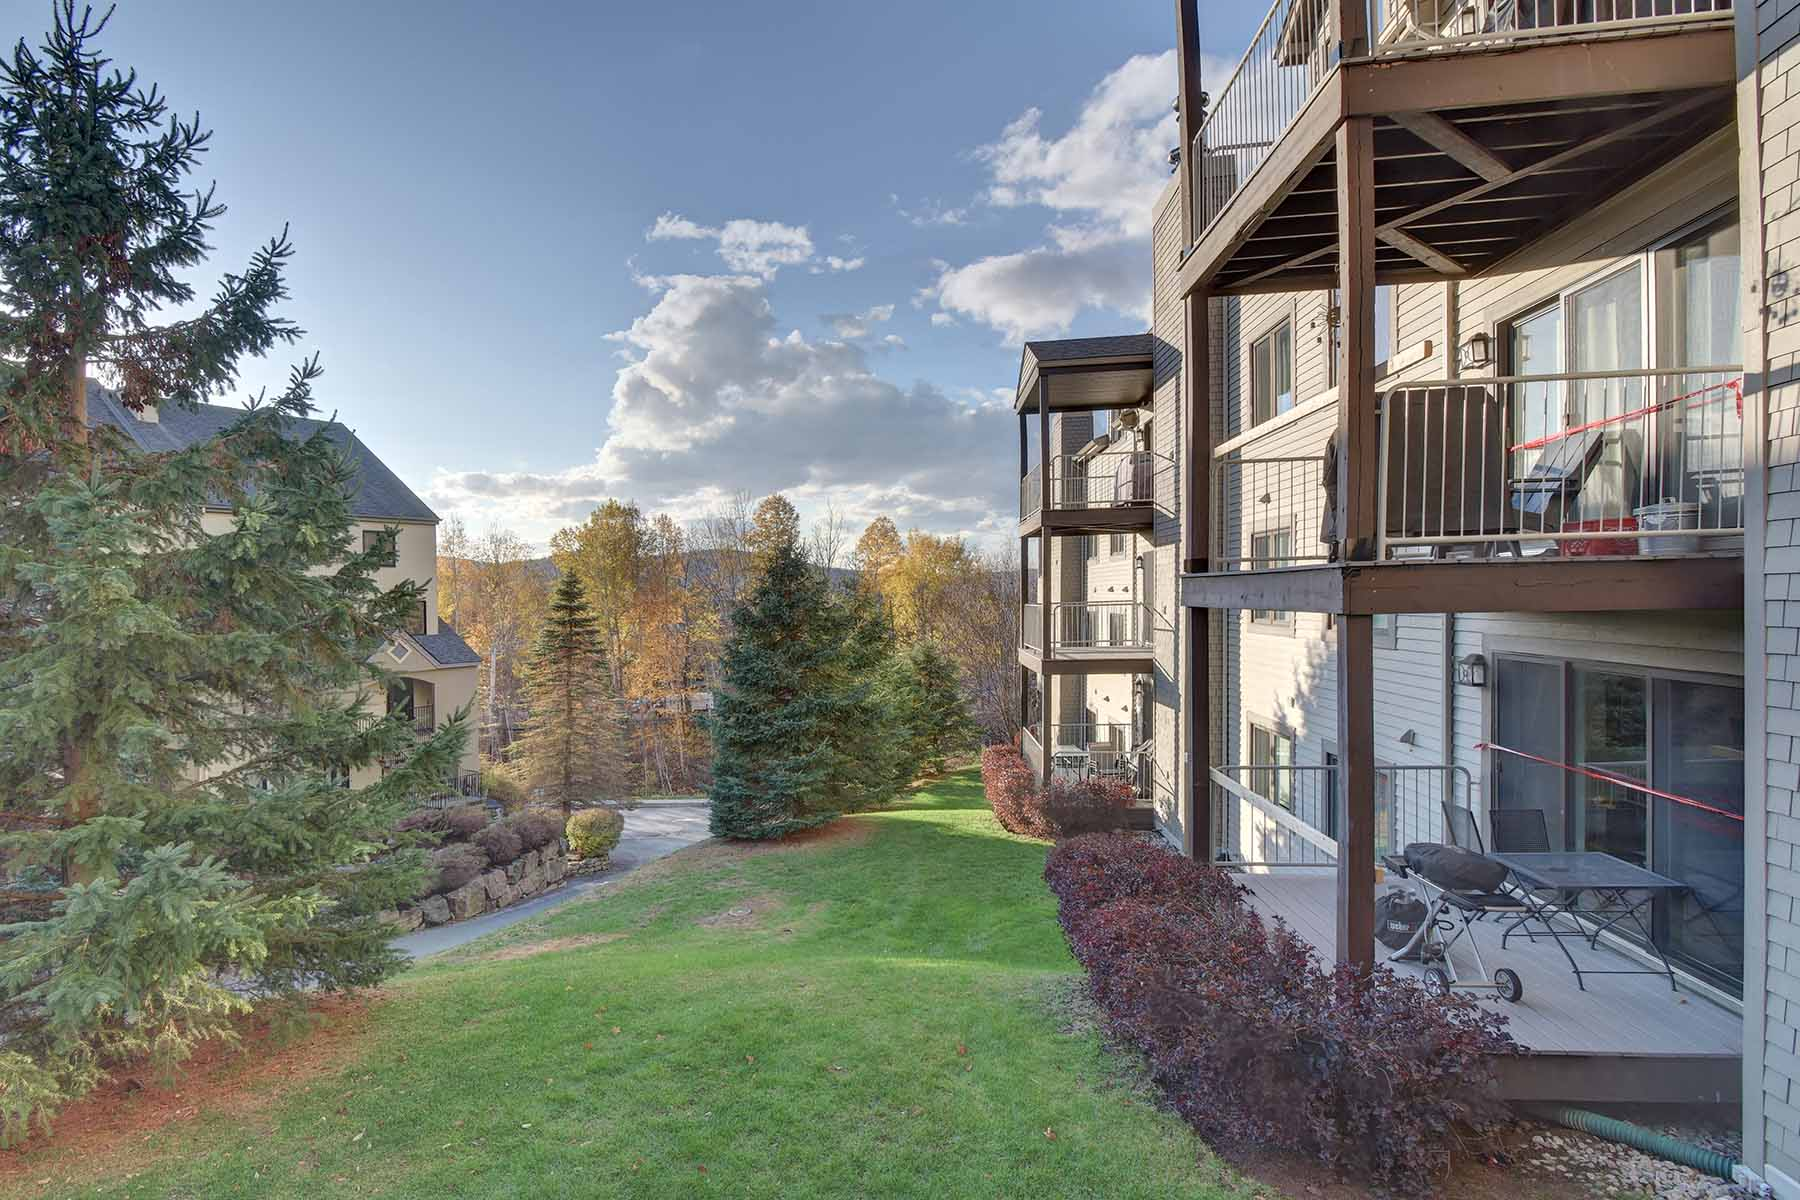 SUMMER – LE RUISSEAU | Entirely renovated condo for rent in Mont-Tremblant